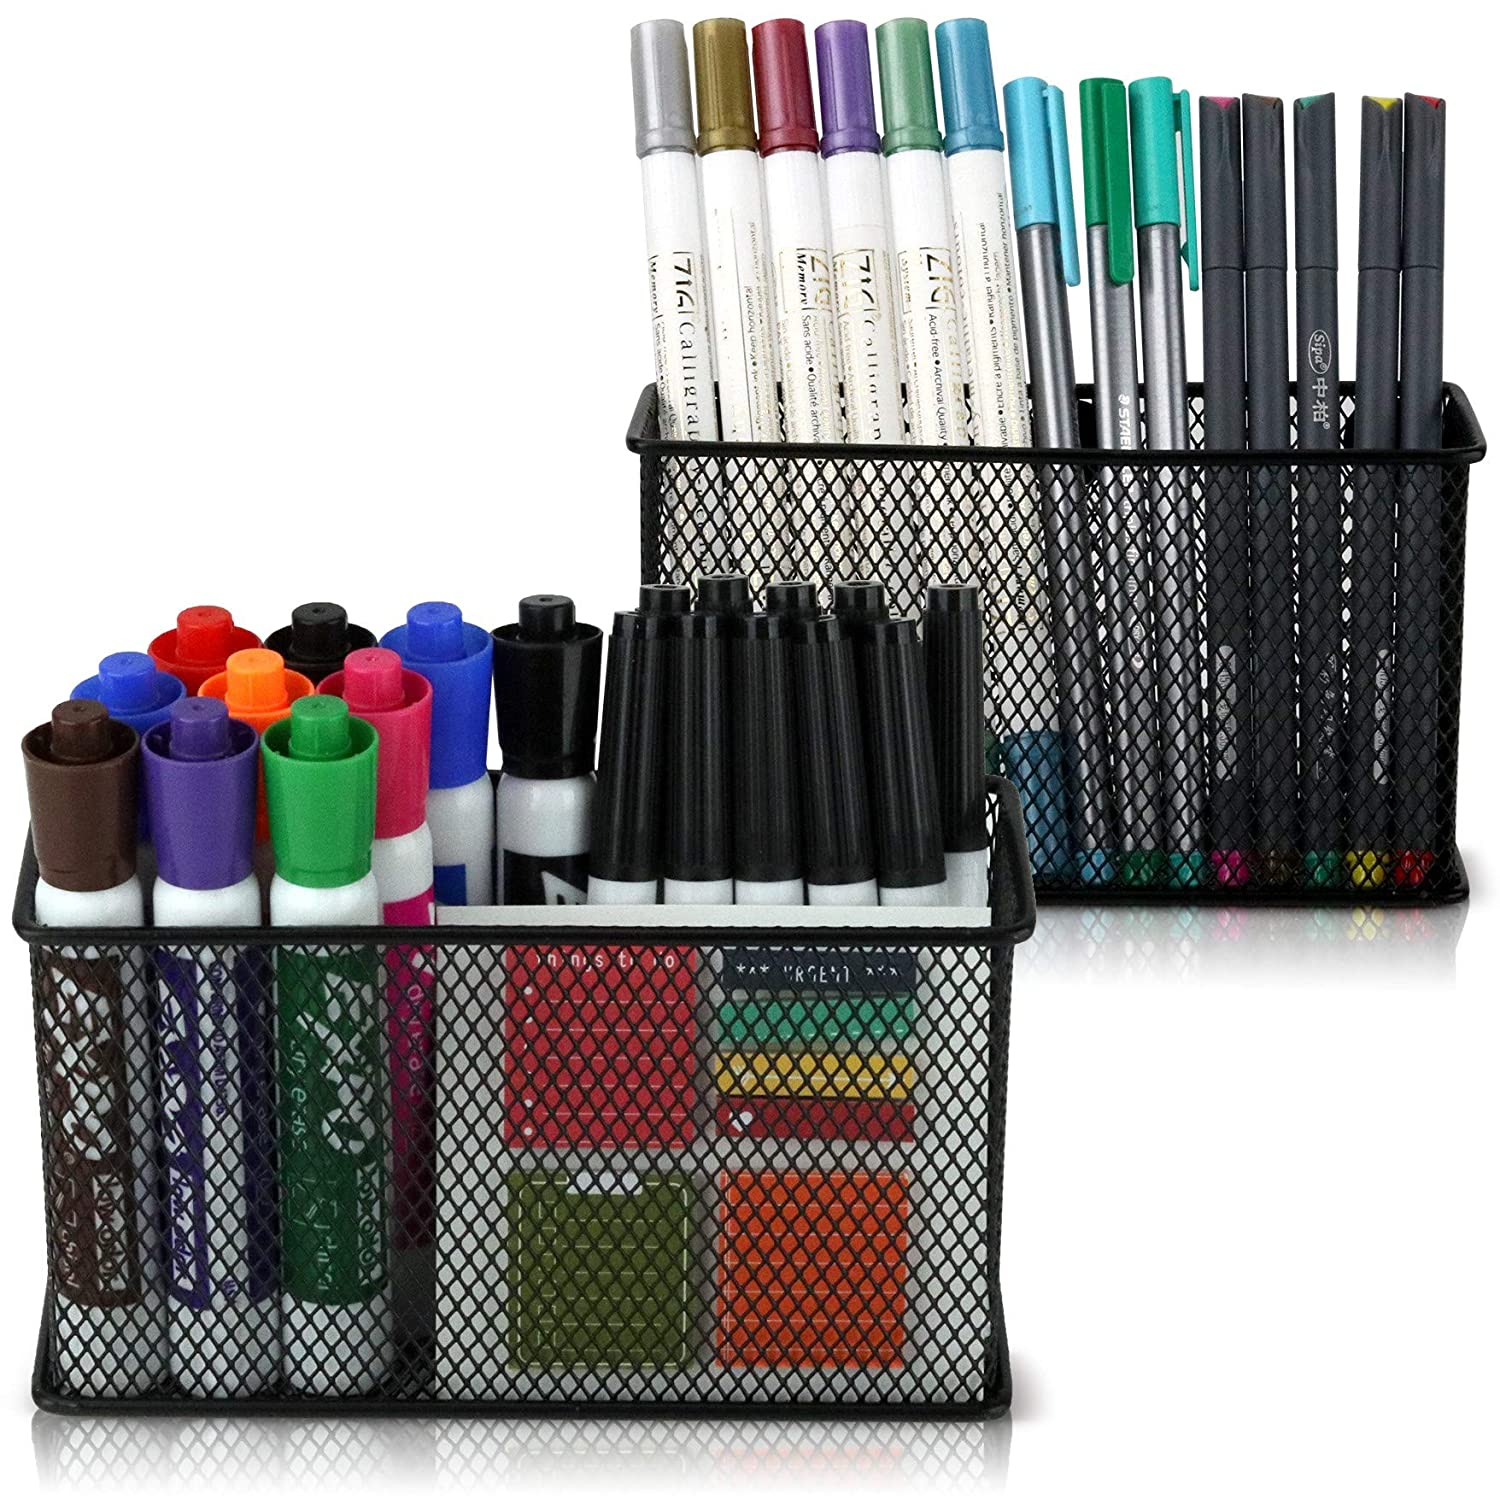 Large Magnetic Pencil Holder Set of 2 - Mesh Storage Baskets with Extra Strong Magnets - Perfect Marker and Pen Organizer Set Holds Securely Your Whiteboard and Locker Accessories